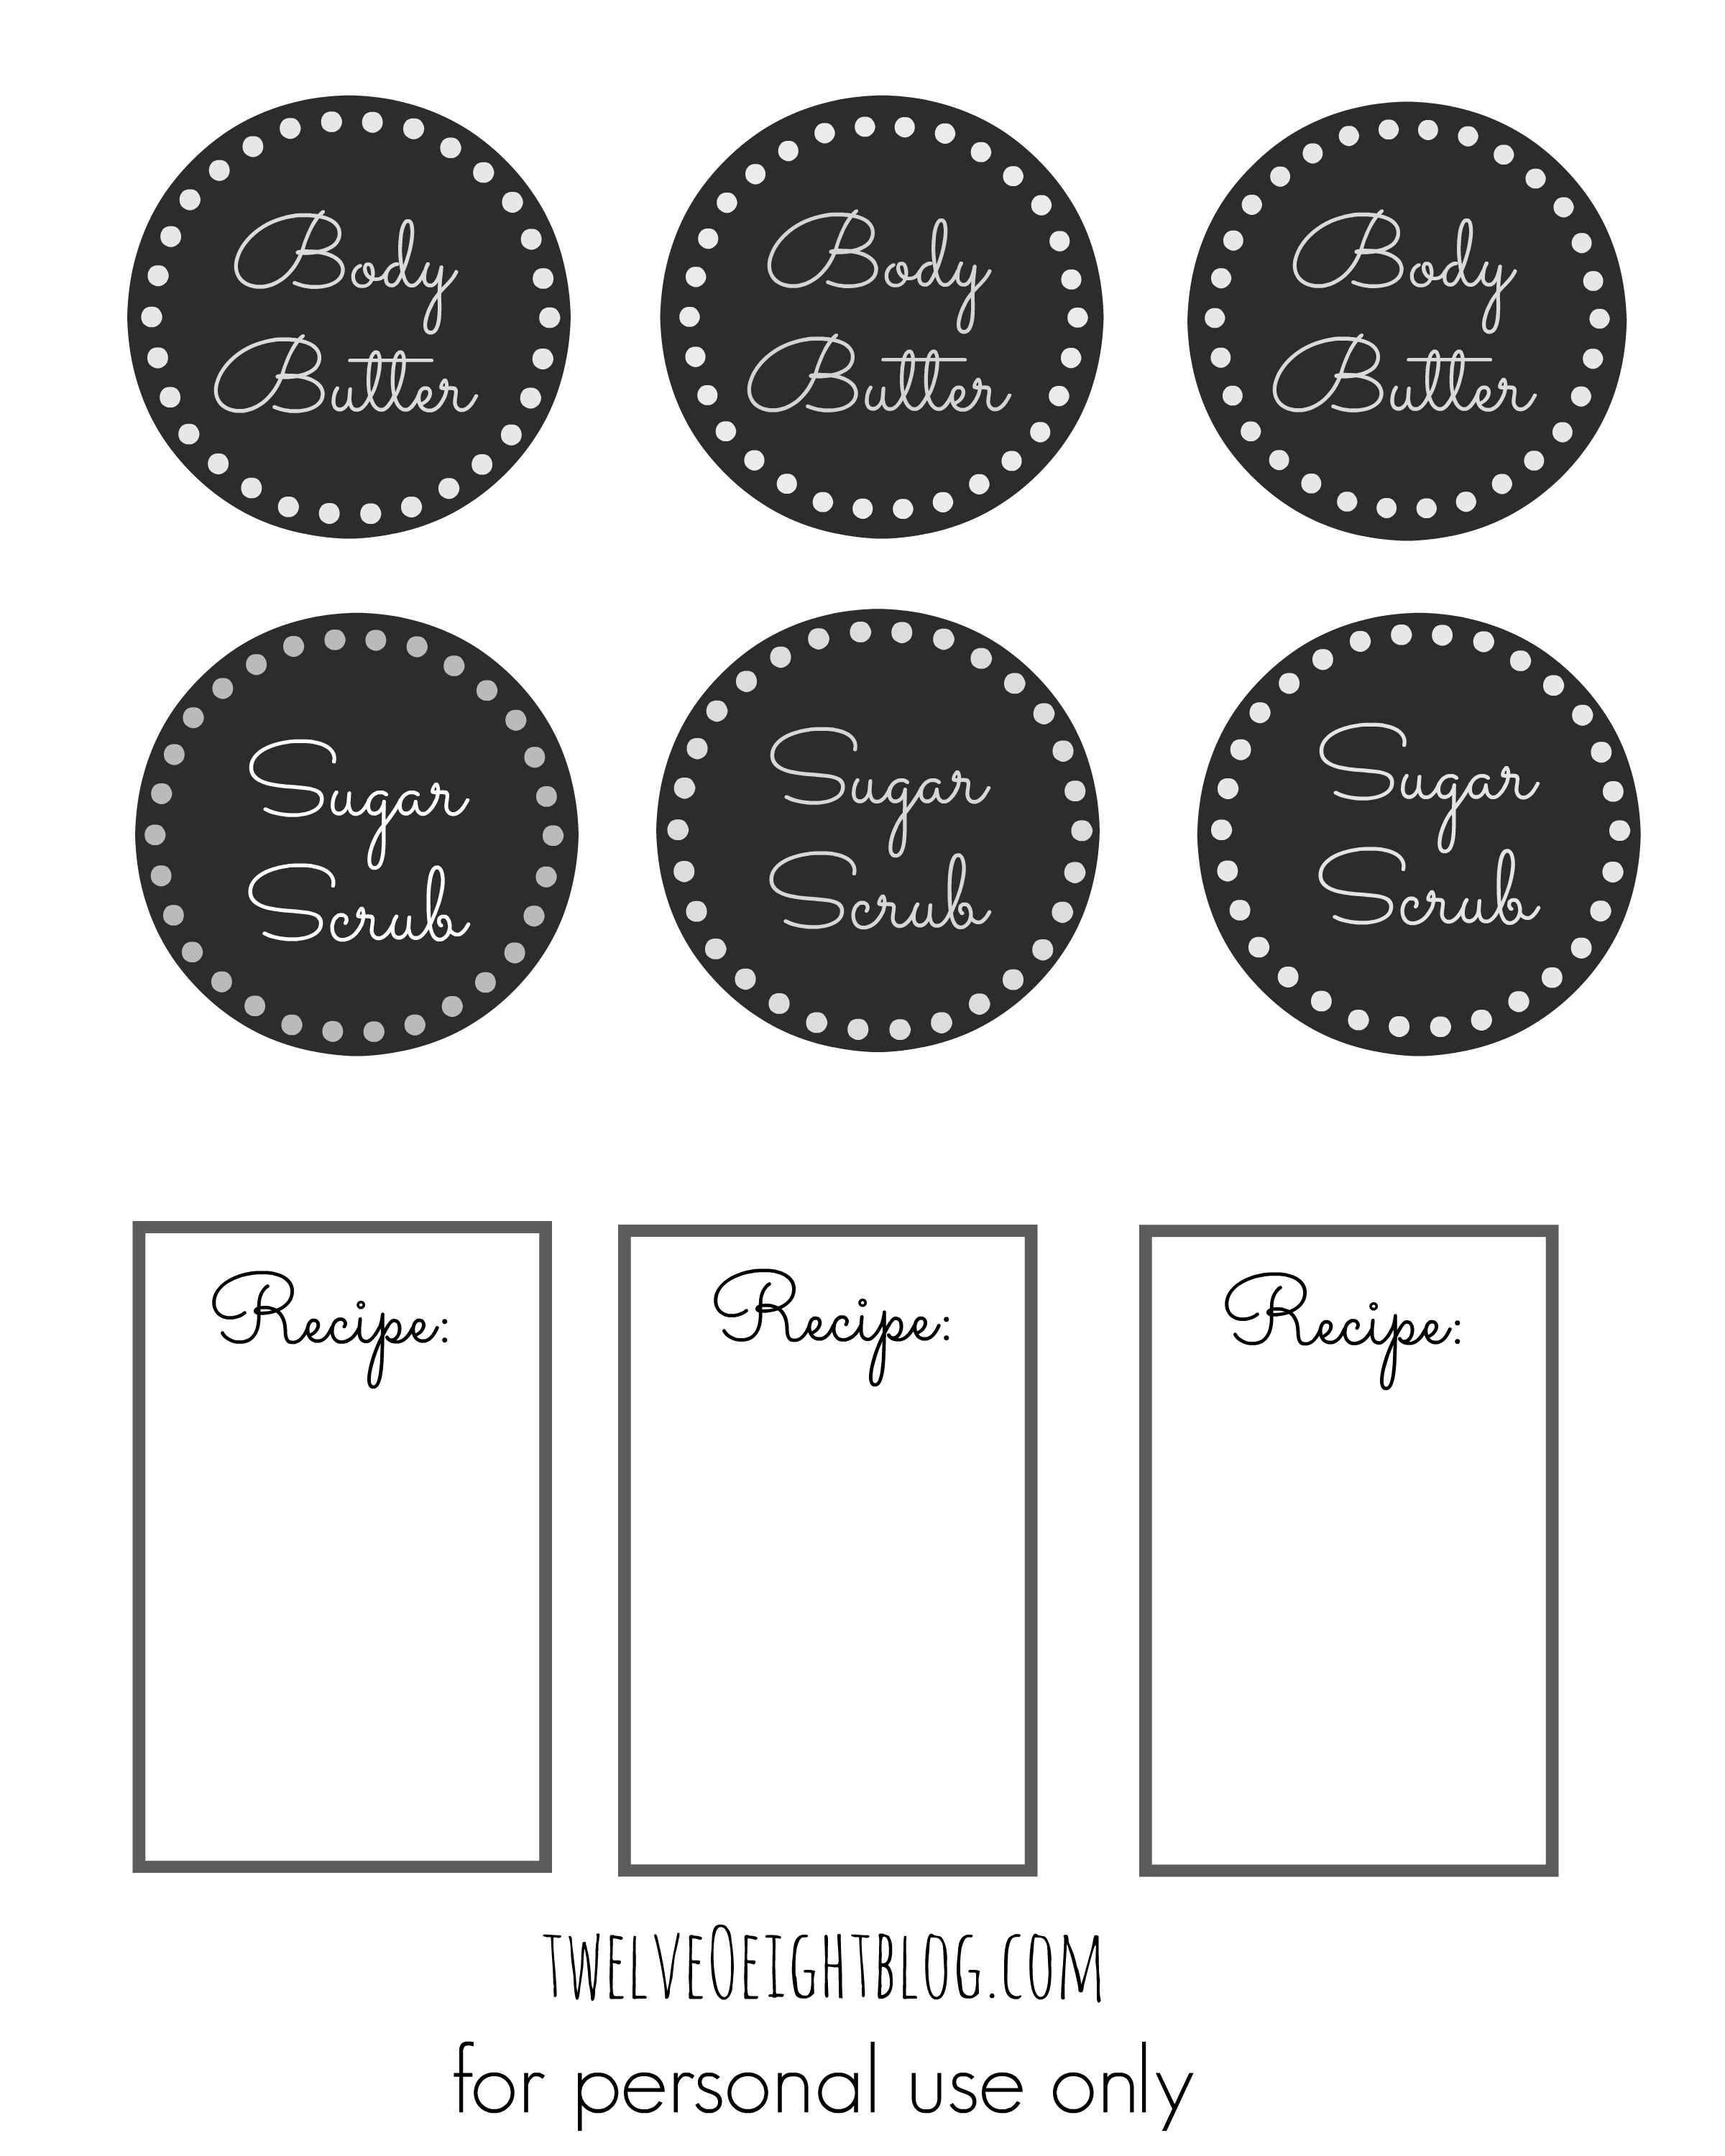 picture about Printable Sugar Scrub Labels titled Gingerbread Cookie System Scrub Recipe + Printable Labels